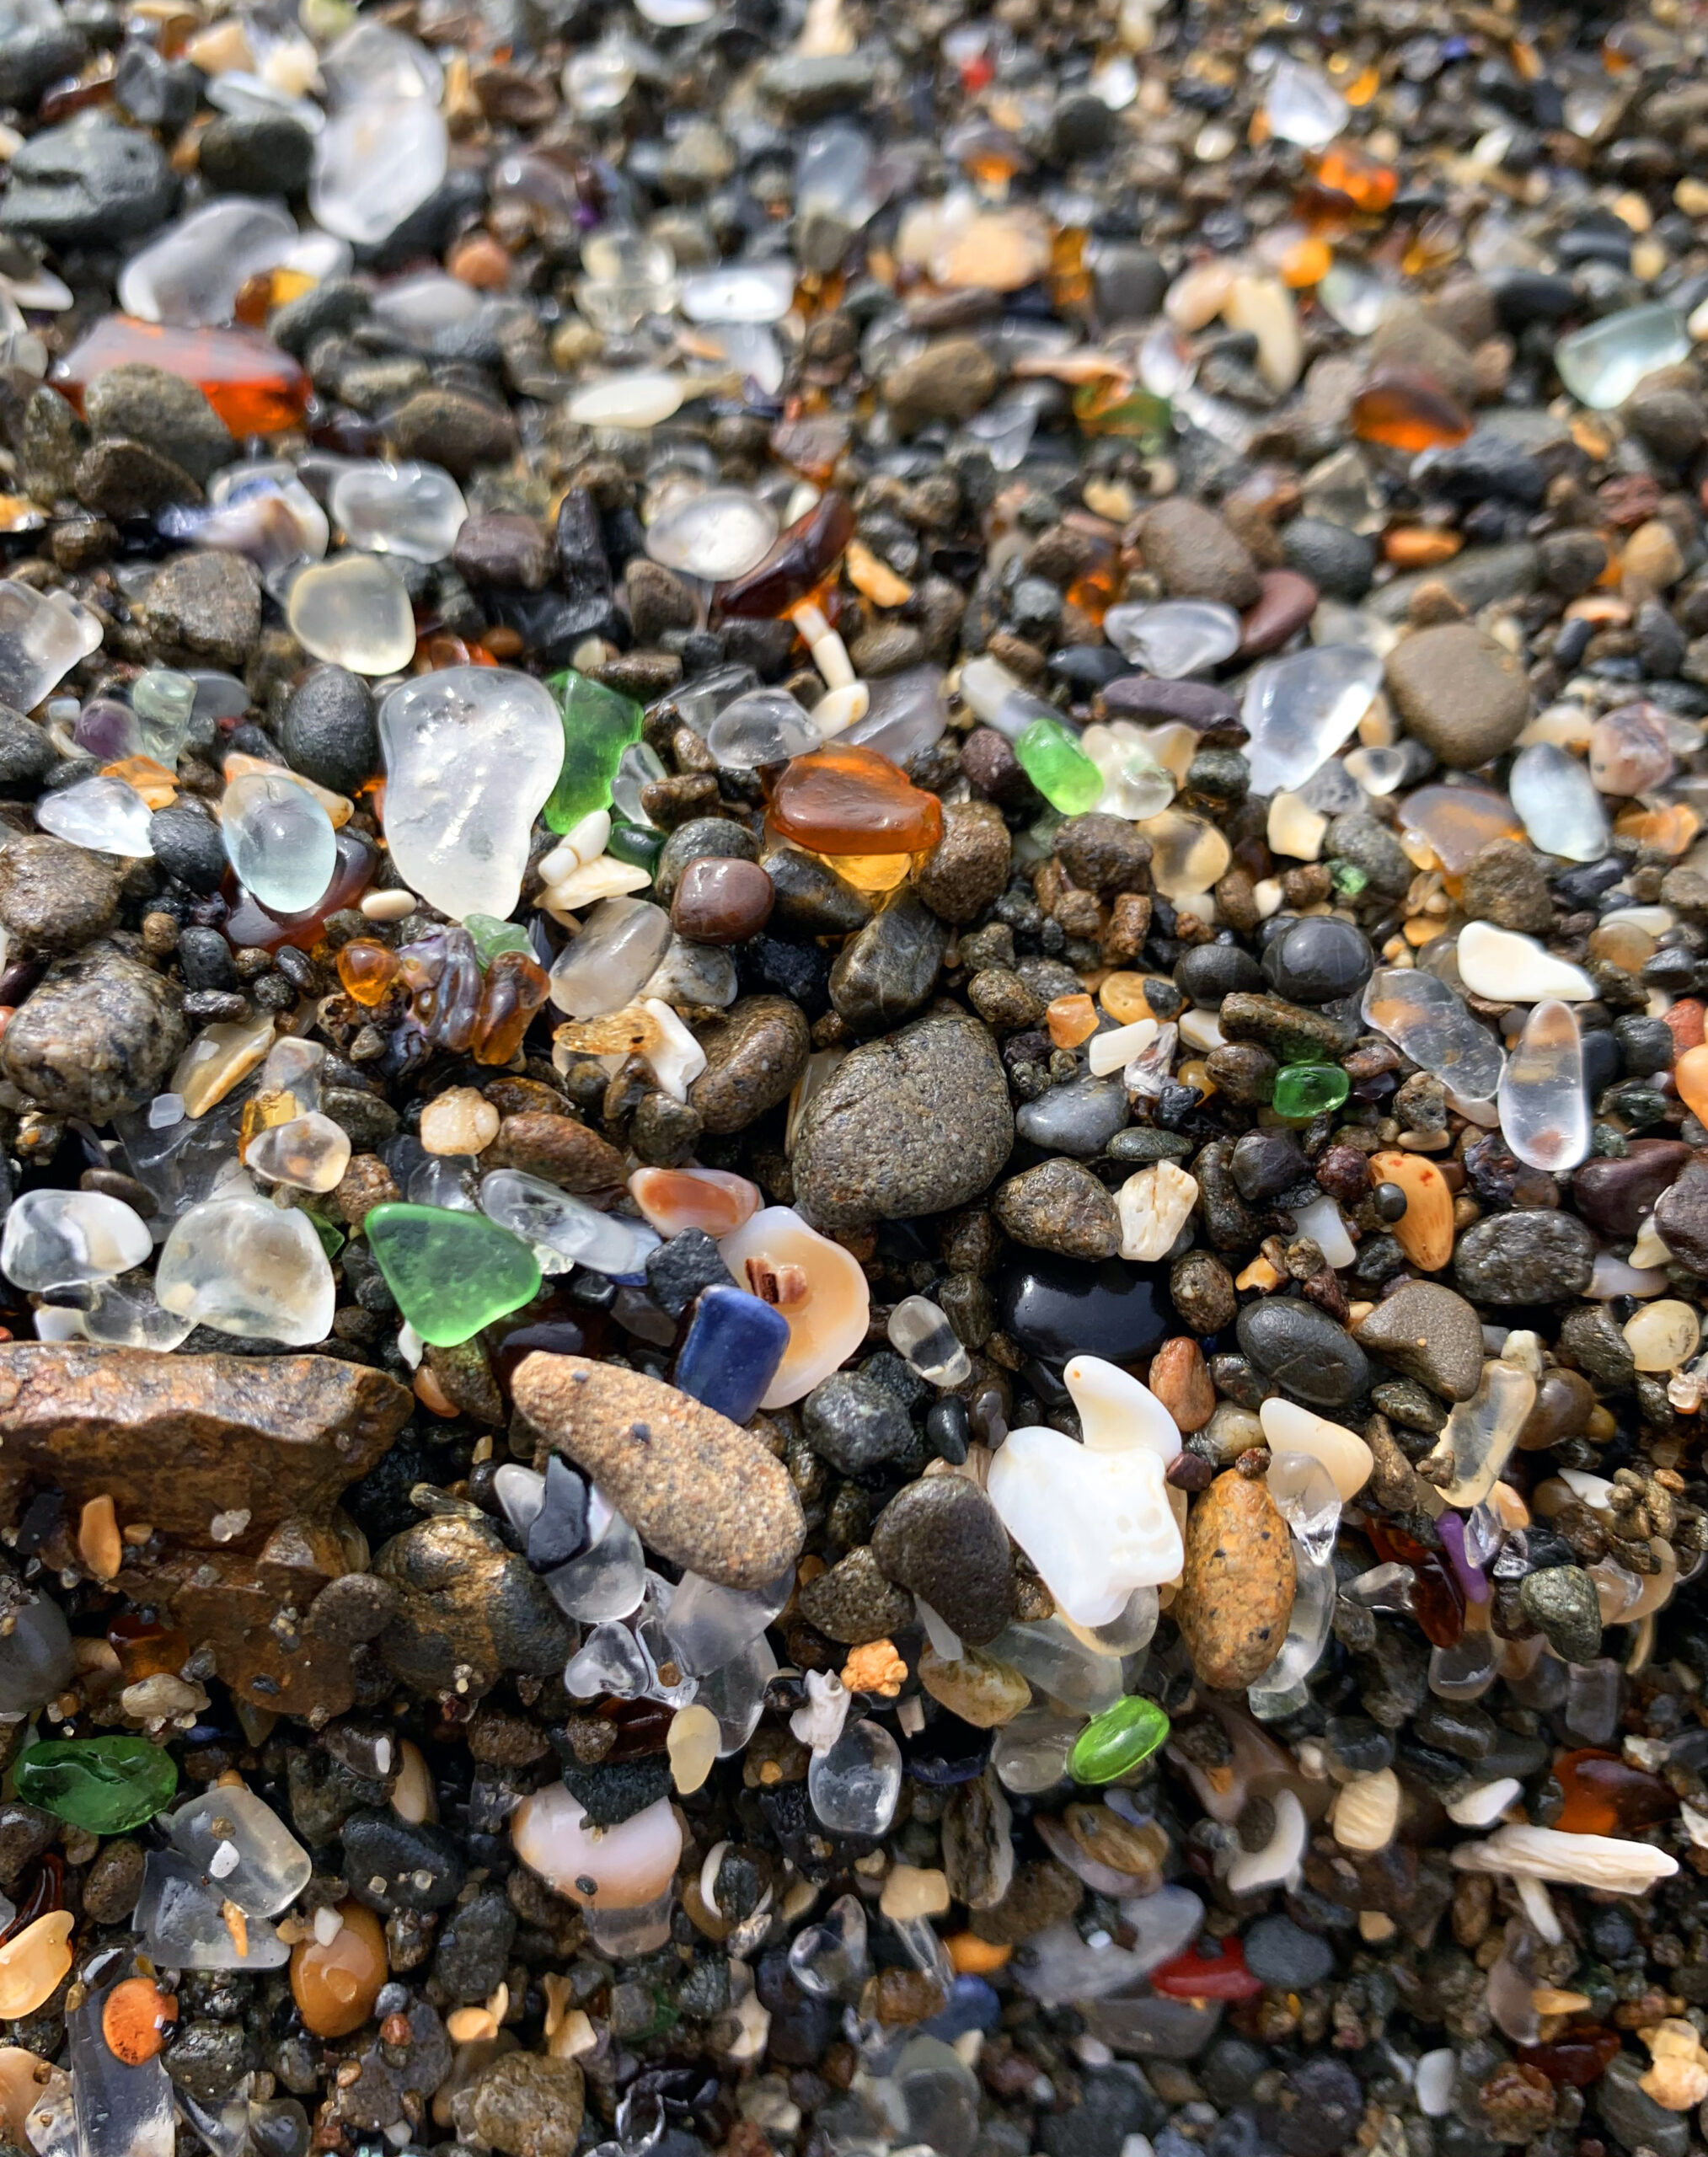 mendocino-heart-and-soul-of-california-glass-beach-1